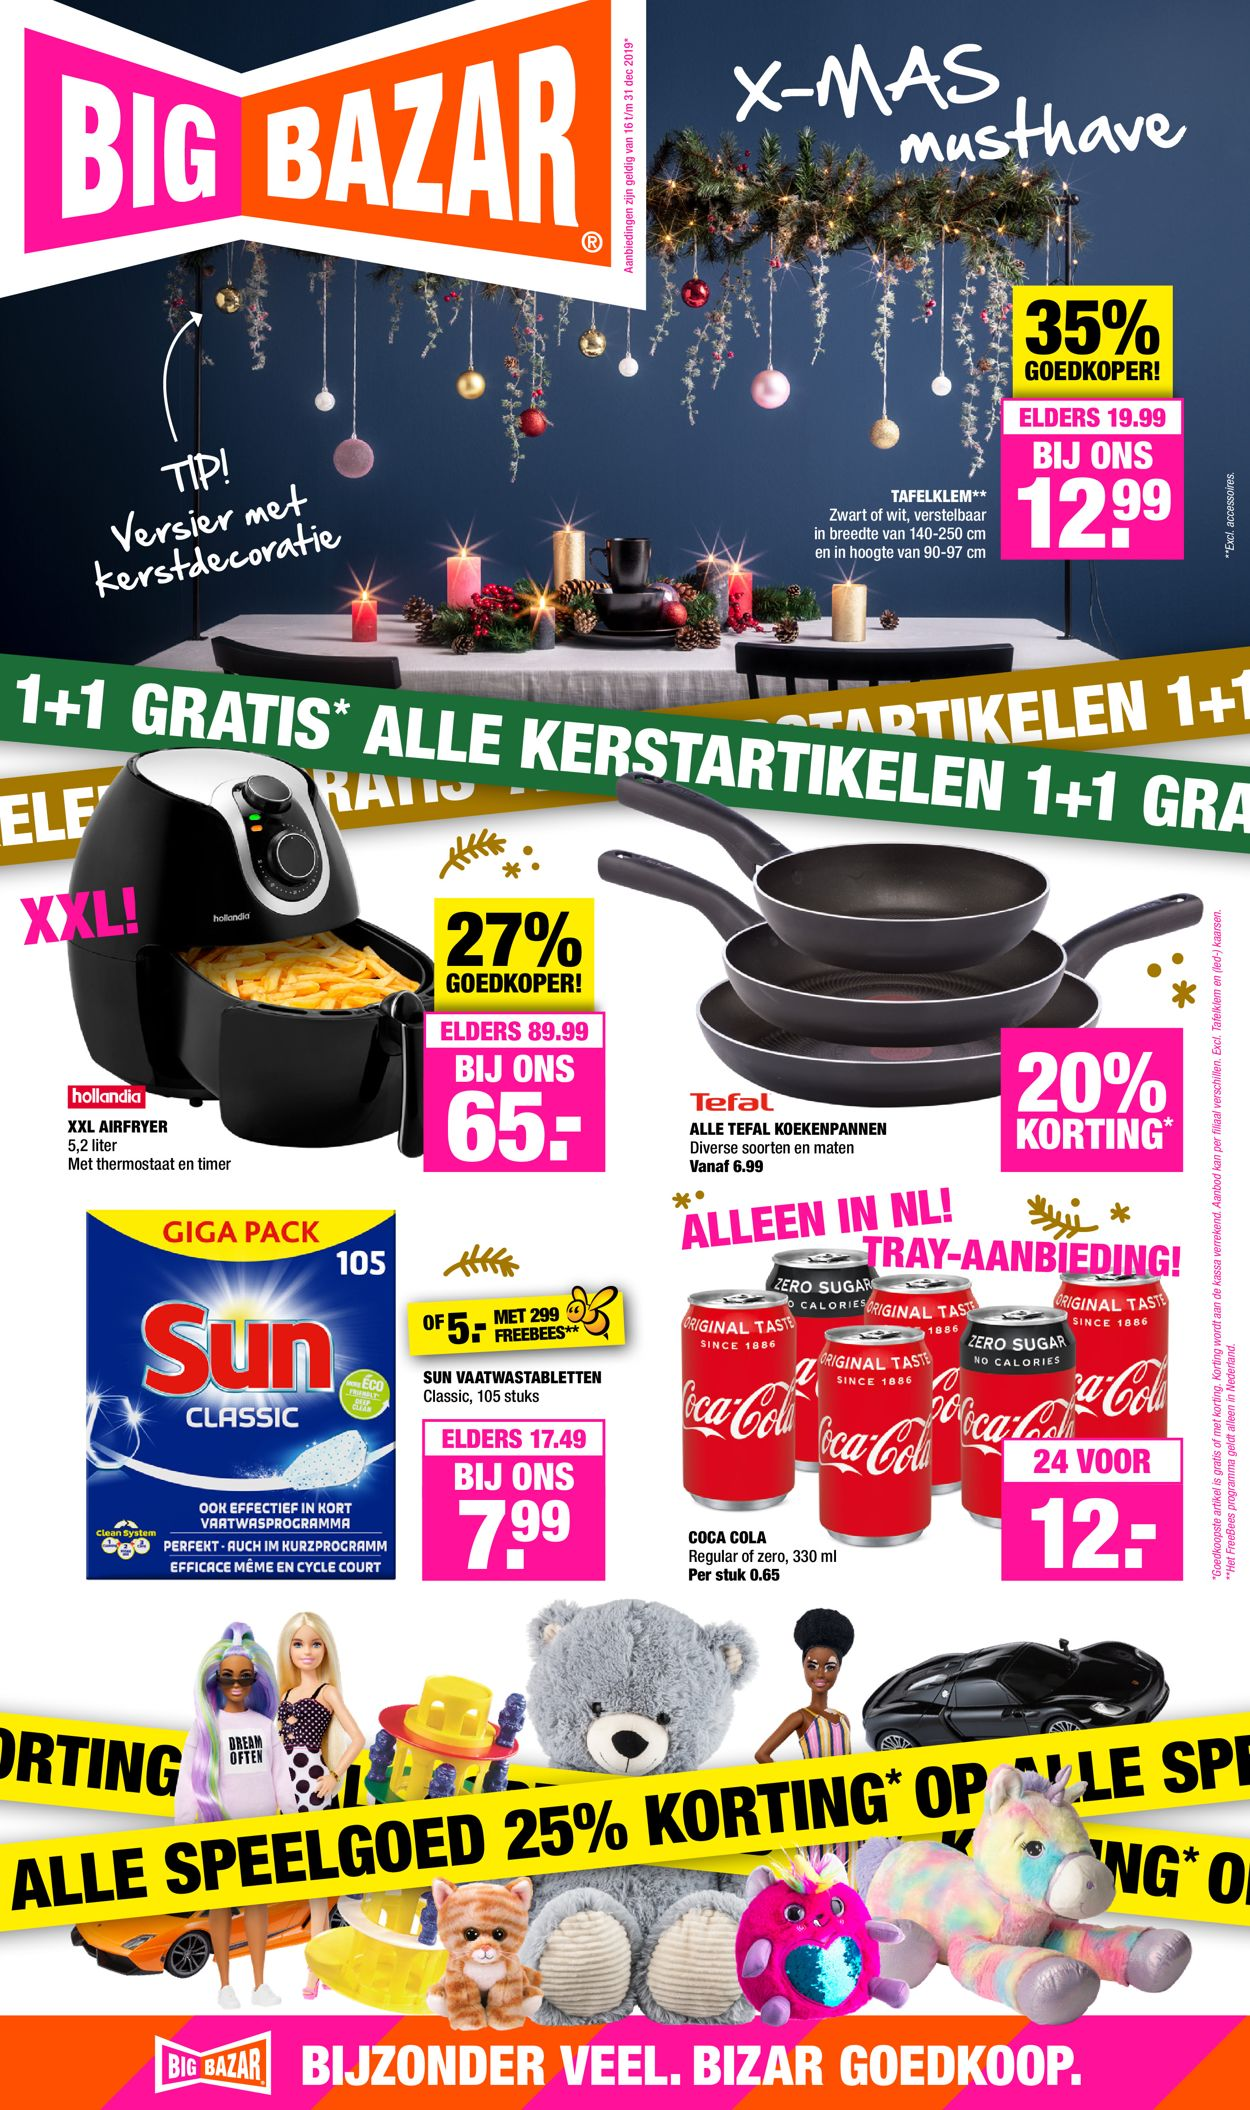 Big Bazar - Kerstaanbieding 2019 Folder - 16.12-31.12.2019